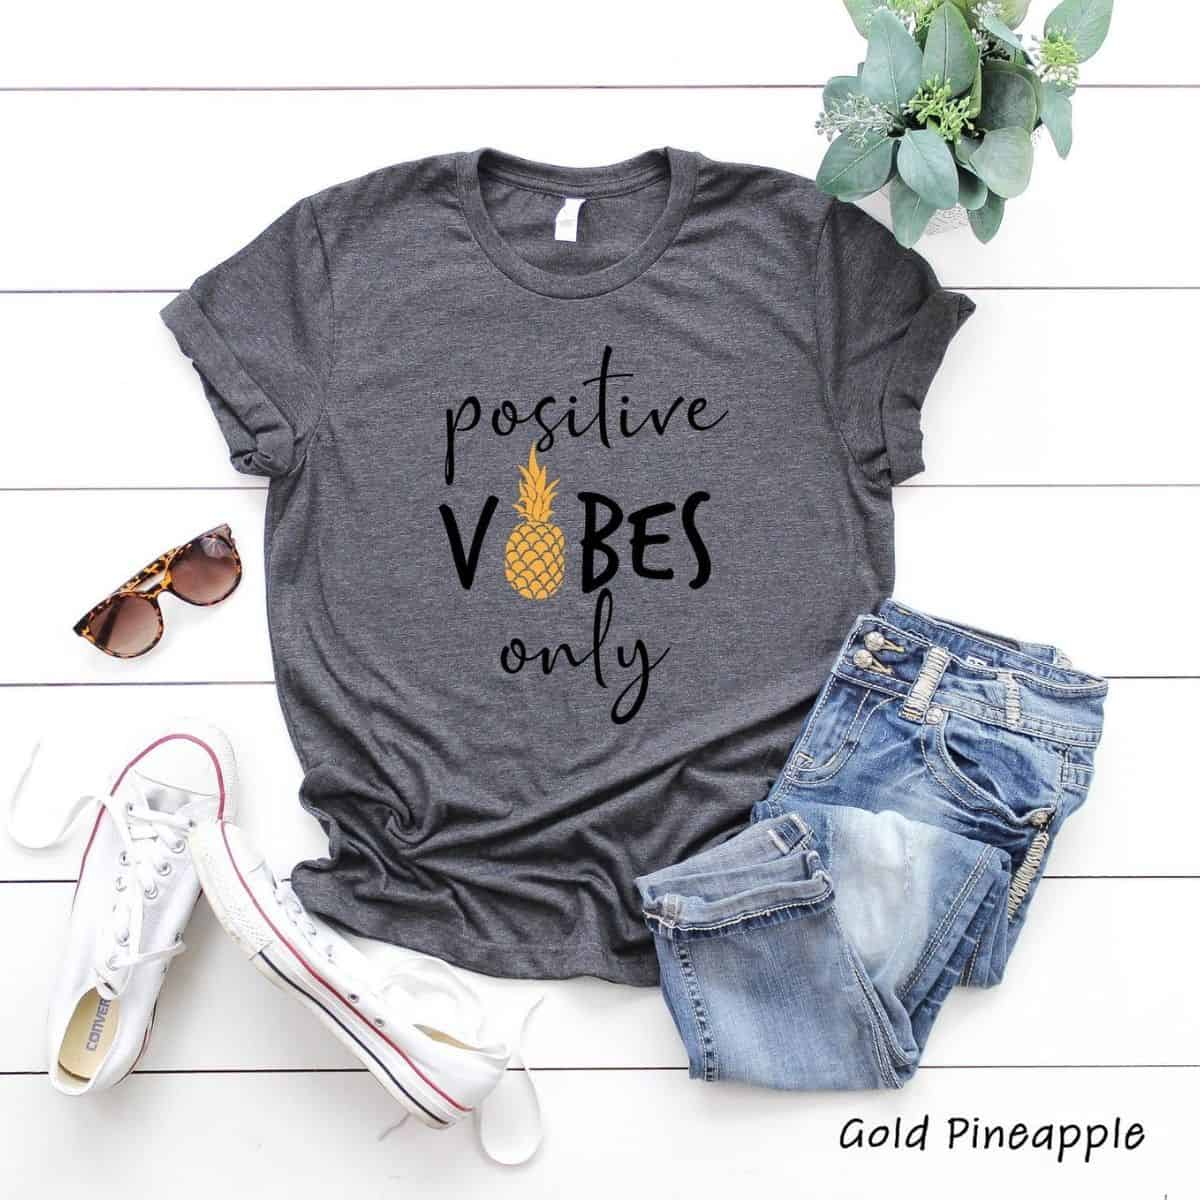 gray tshirt laid out with a pair of jeans, sunglasses, and white sneakers